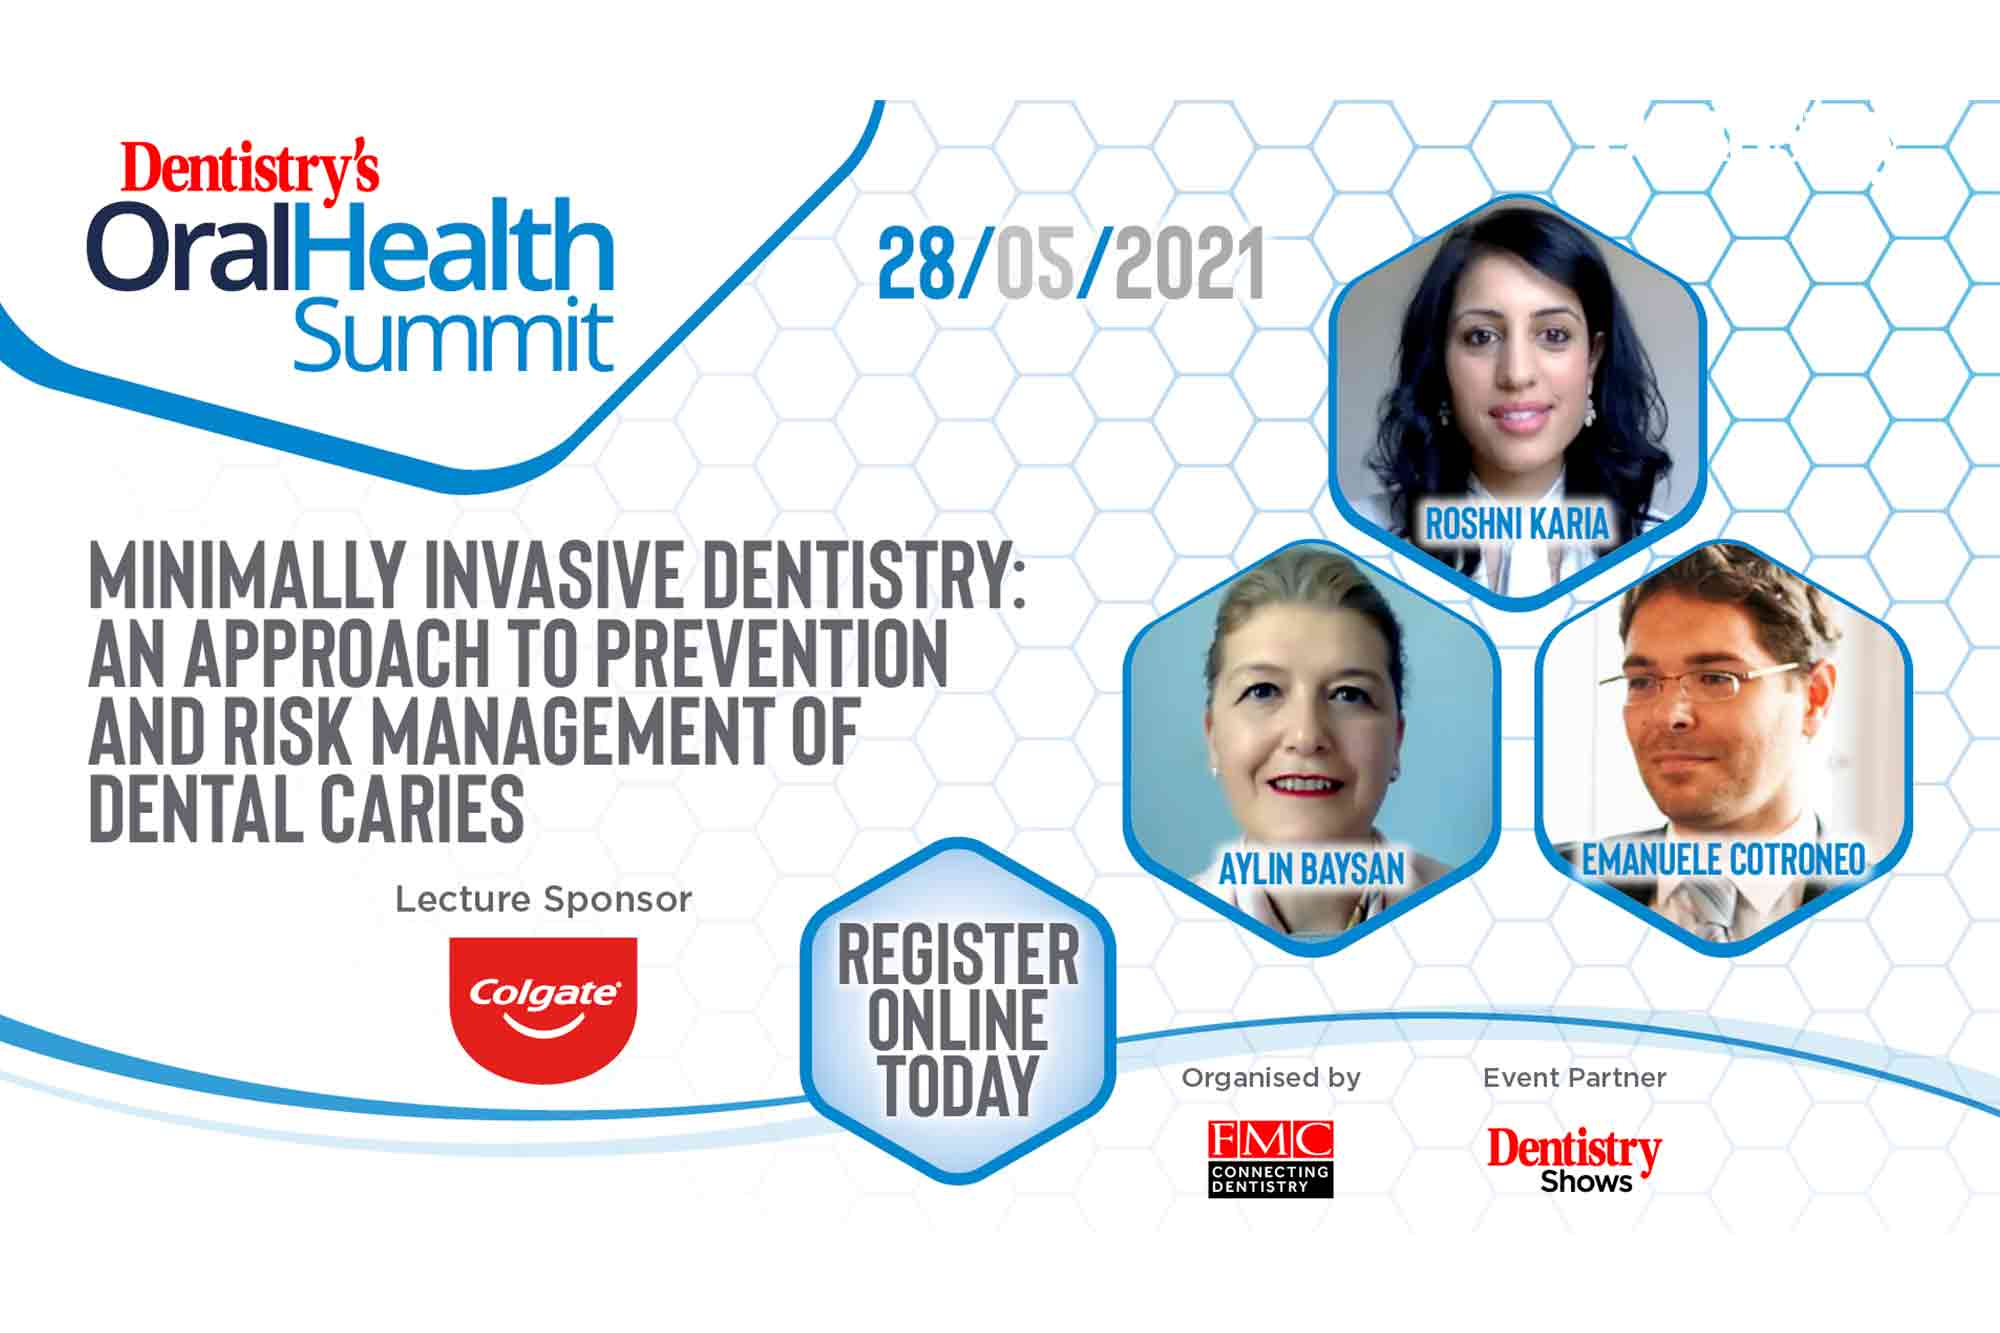 Oral Health Summit – an approach to prevention and risk management of dental caries